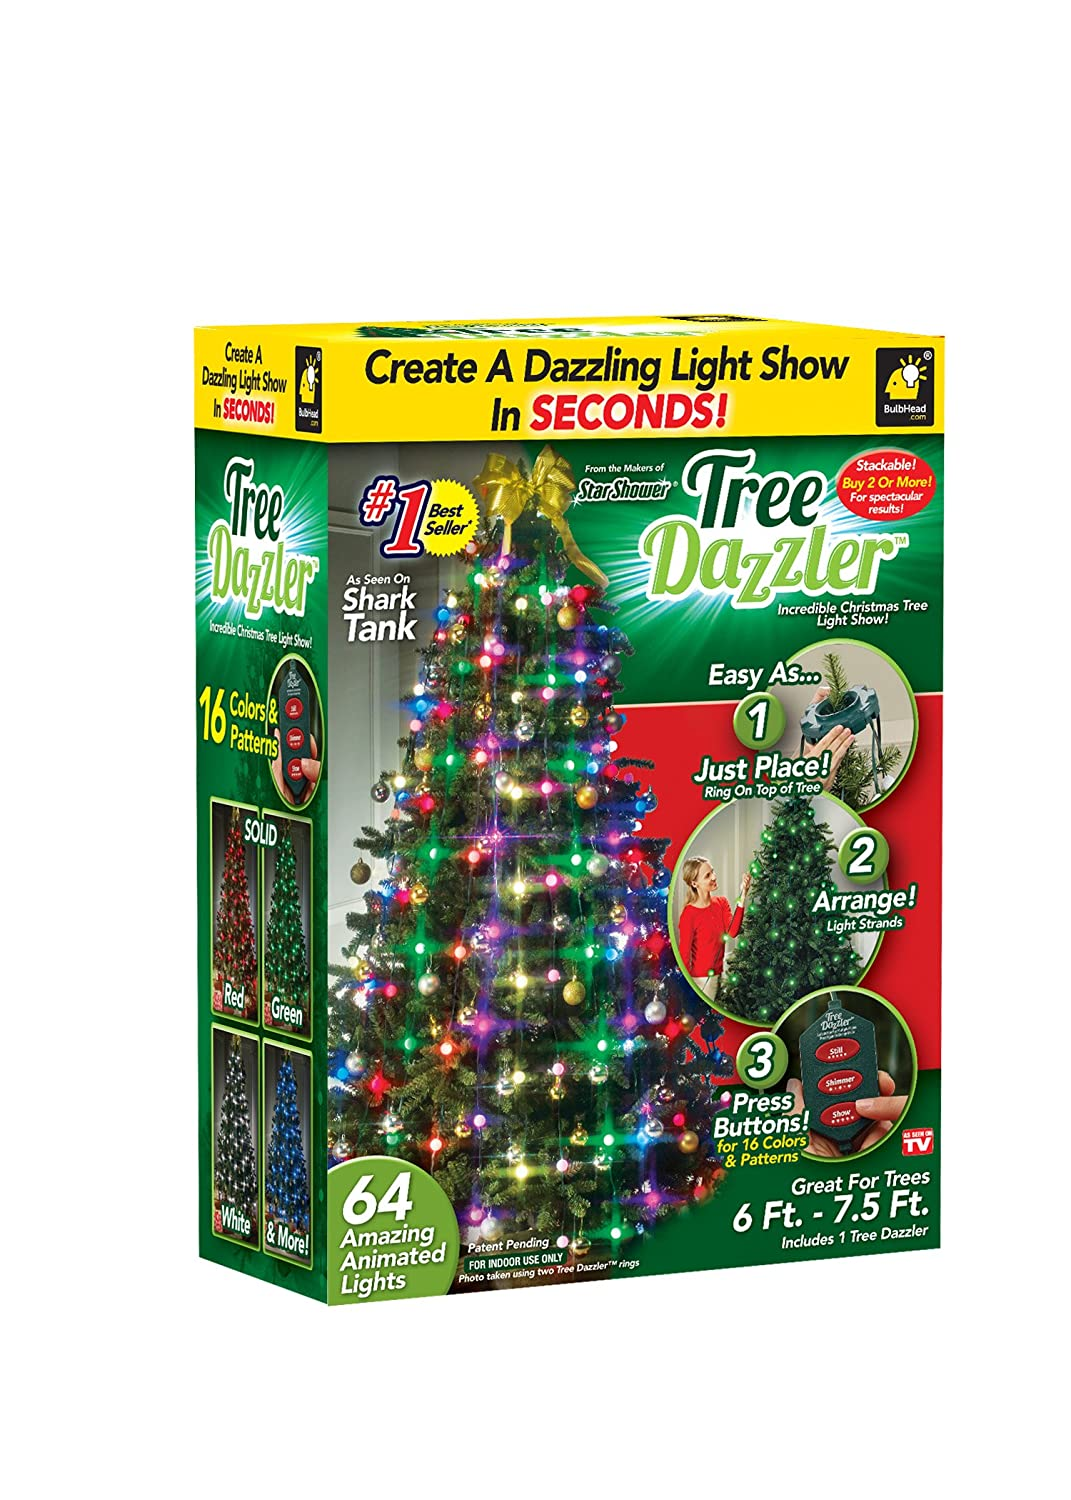 amazoncom star shower tree dazzler led christmas lights by bulbhead indoor color changing led light show for the xmas tree 16 light patterns green - Craigslist Outdoor Christmas Decorations